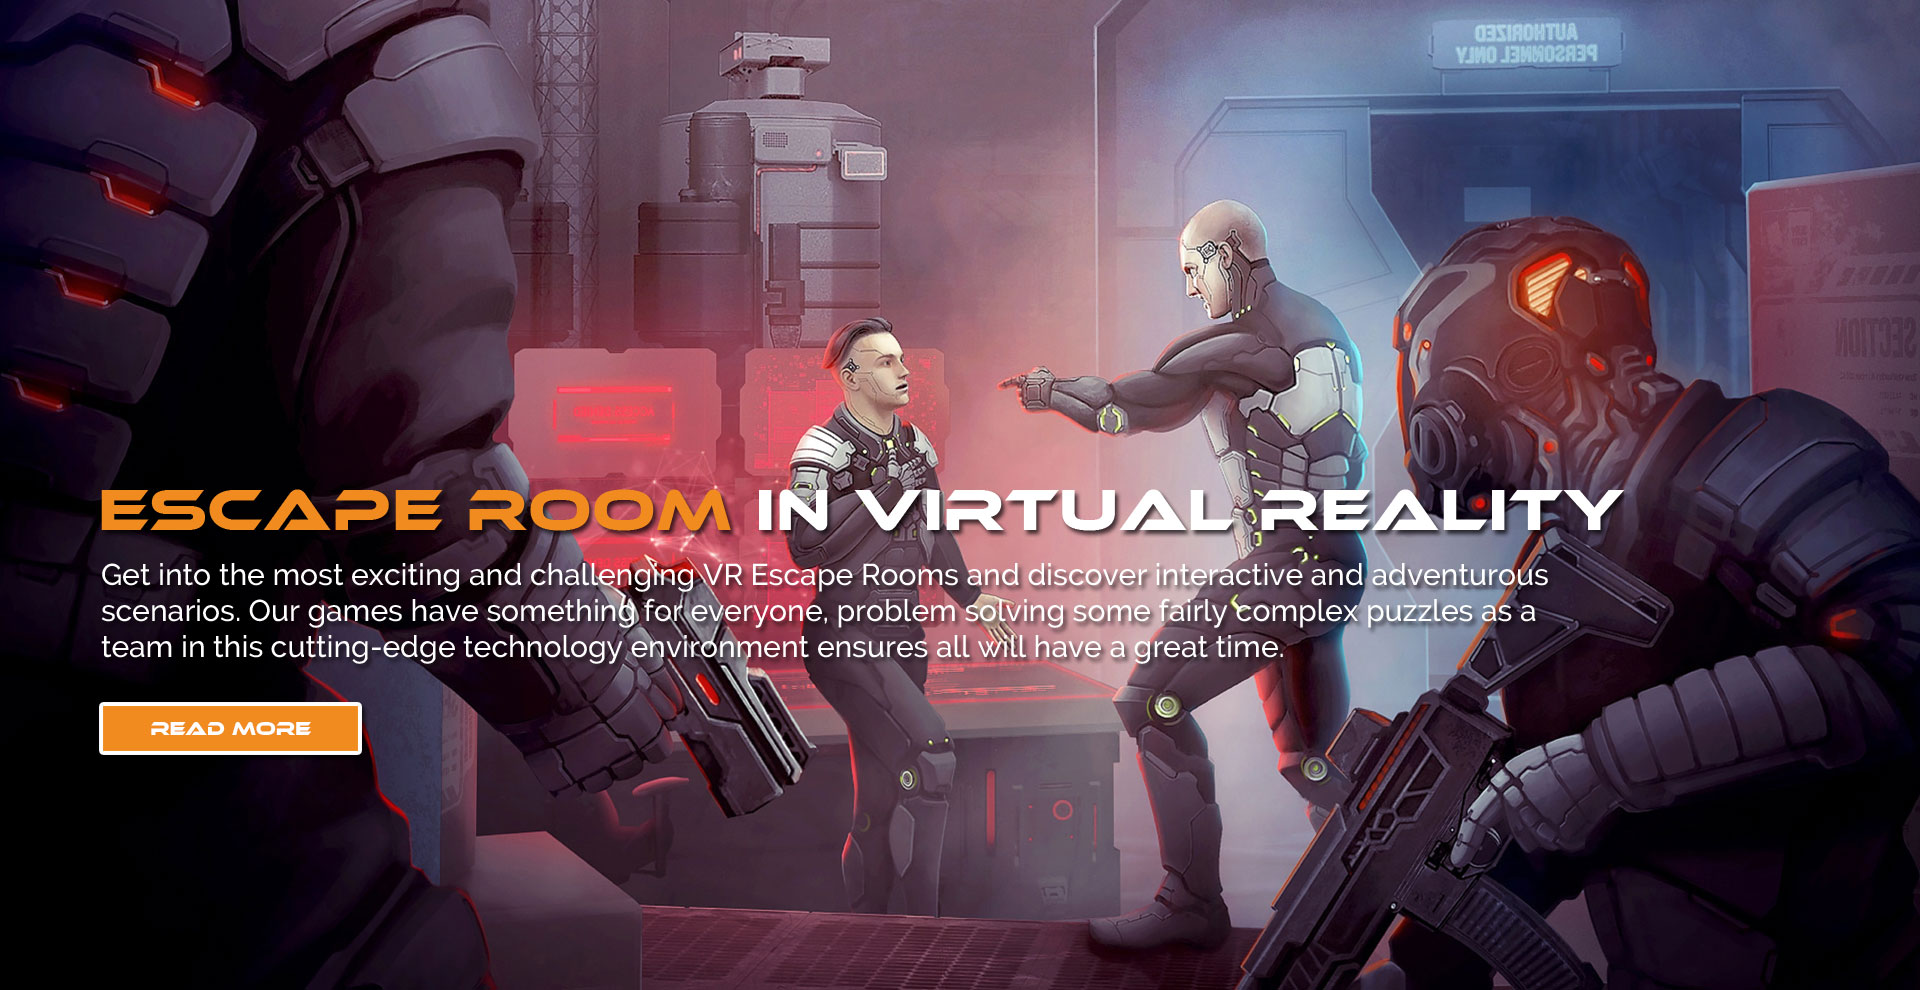 ESCAPE ROOM IN VIRTUAL REALITY